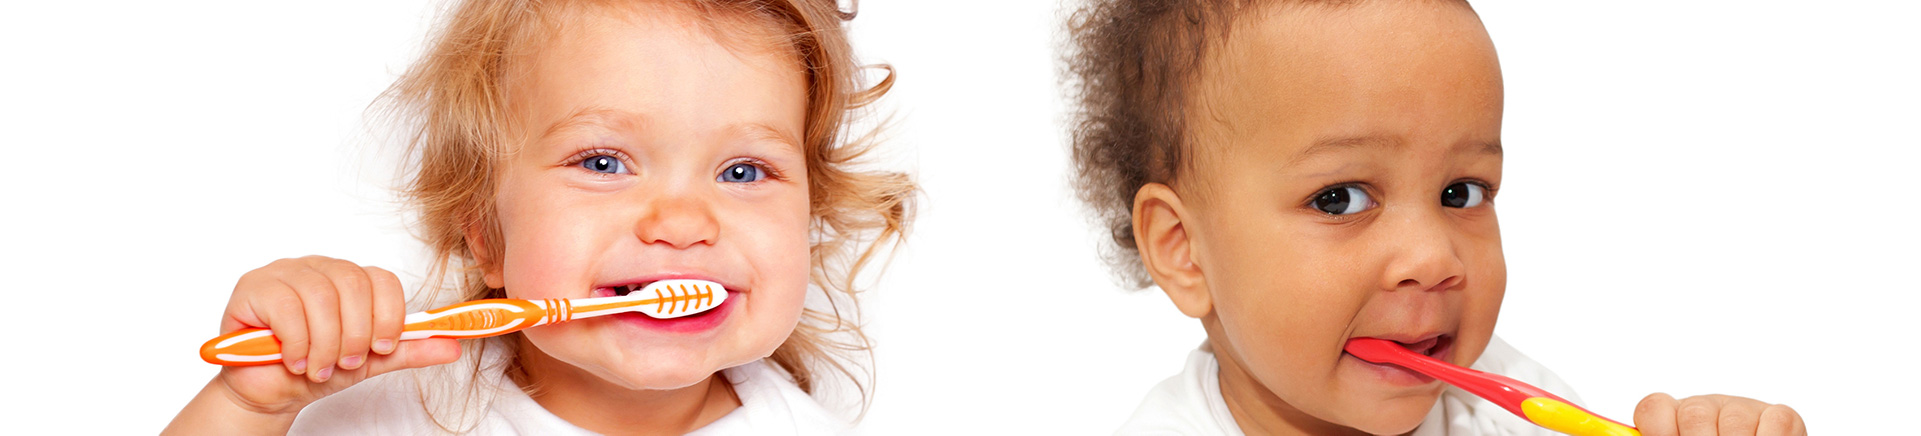 Why a Pediatric Dentist? Milton, GA